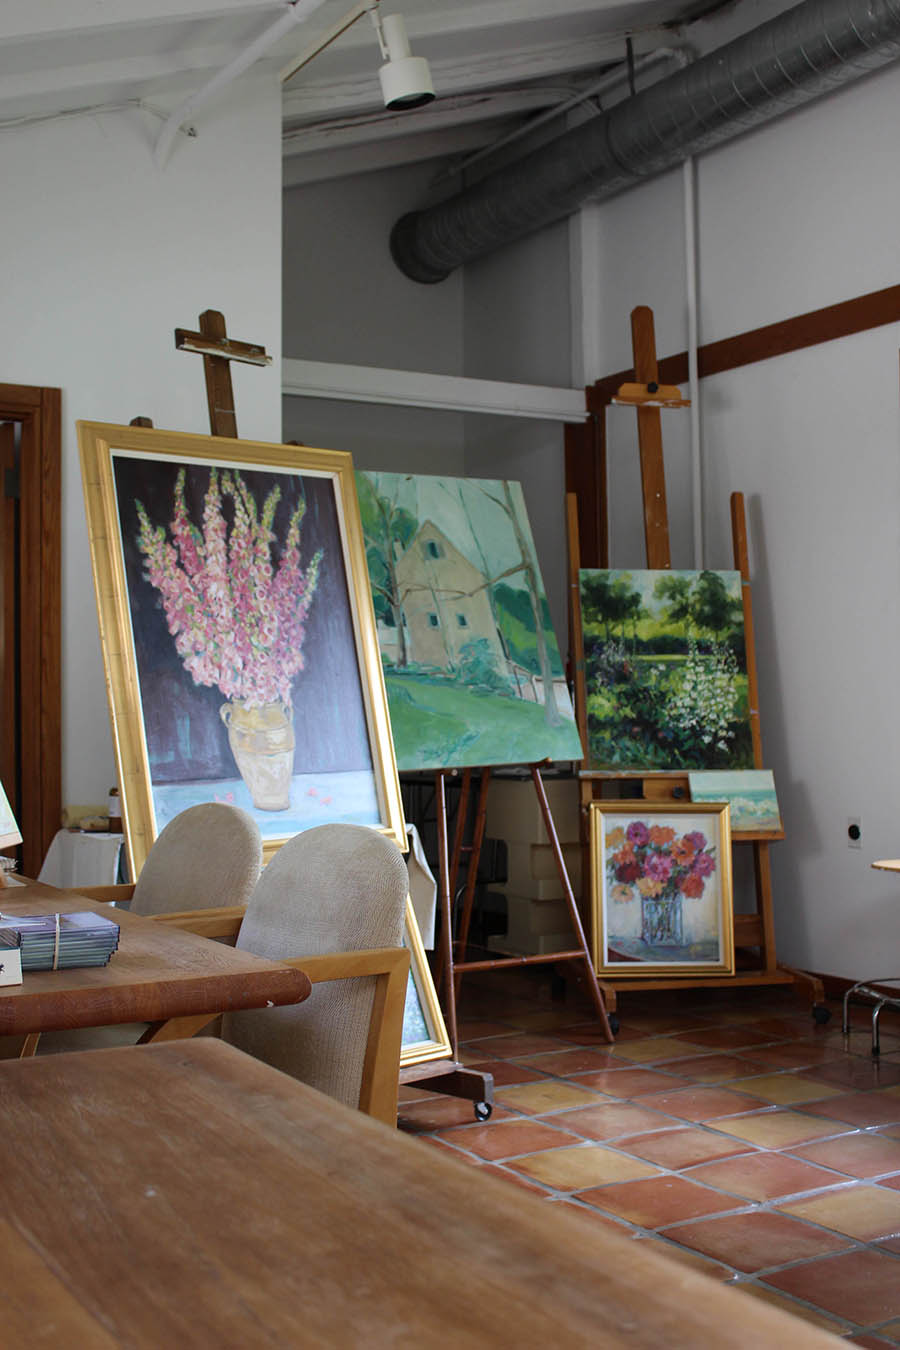 Paintings for floral still life studies